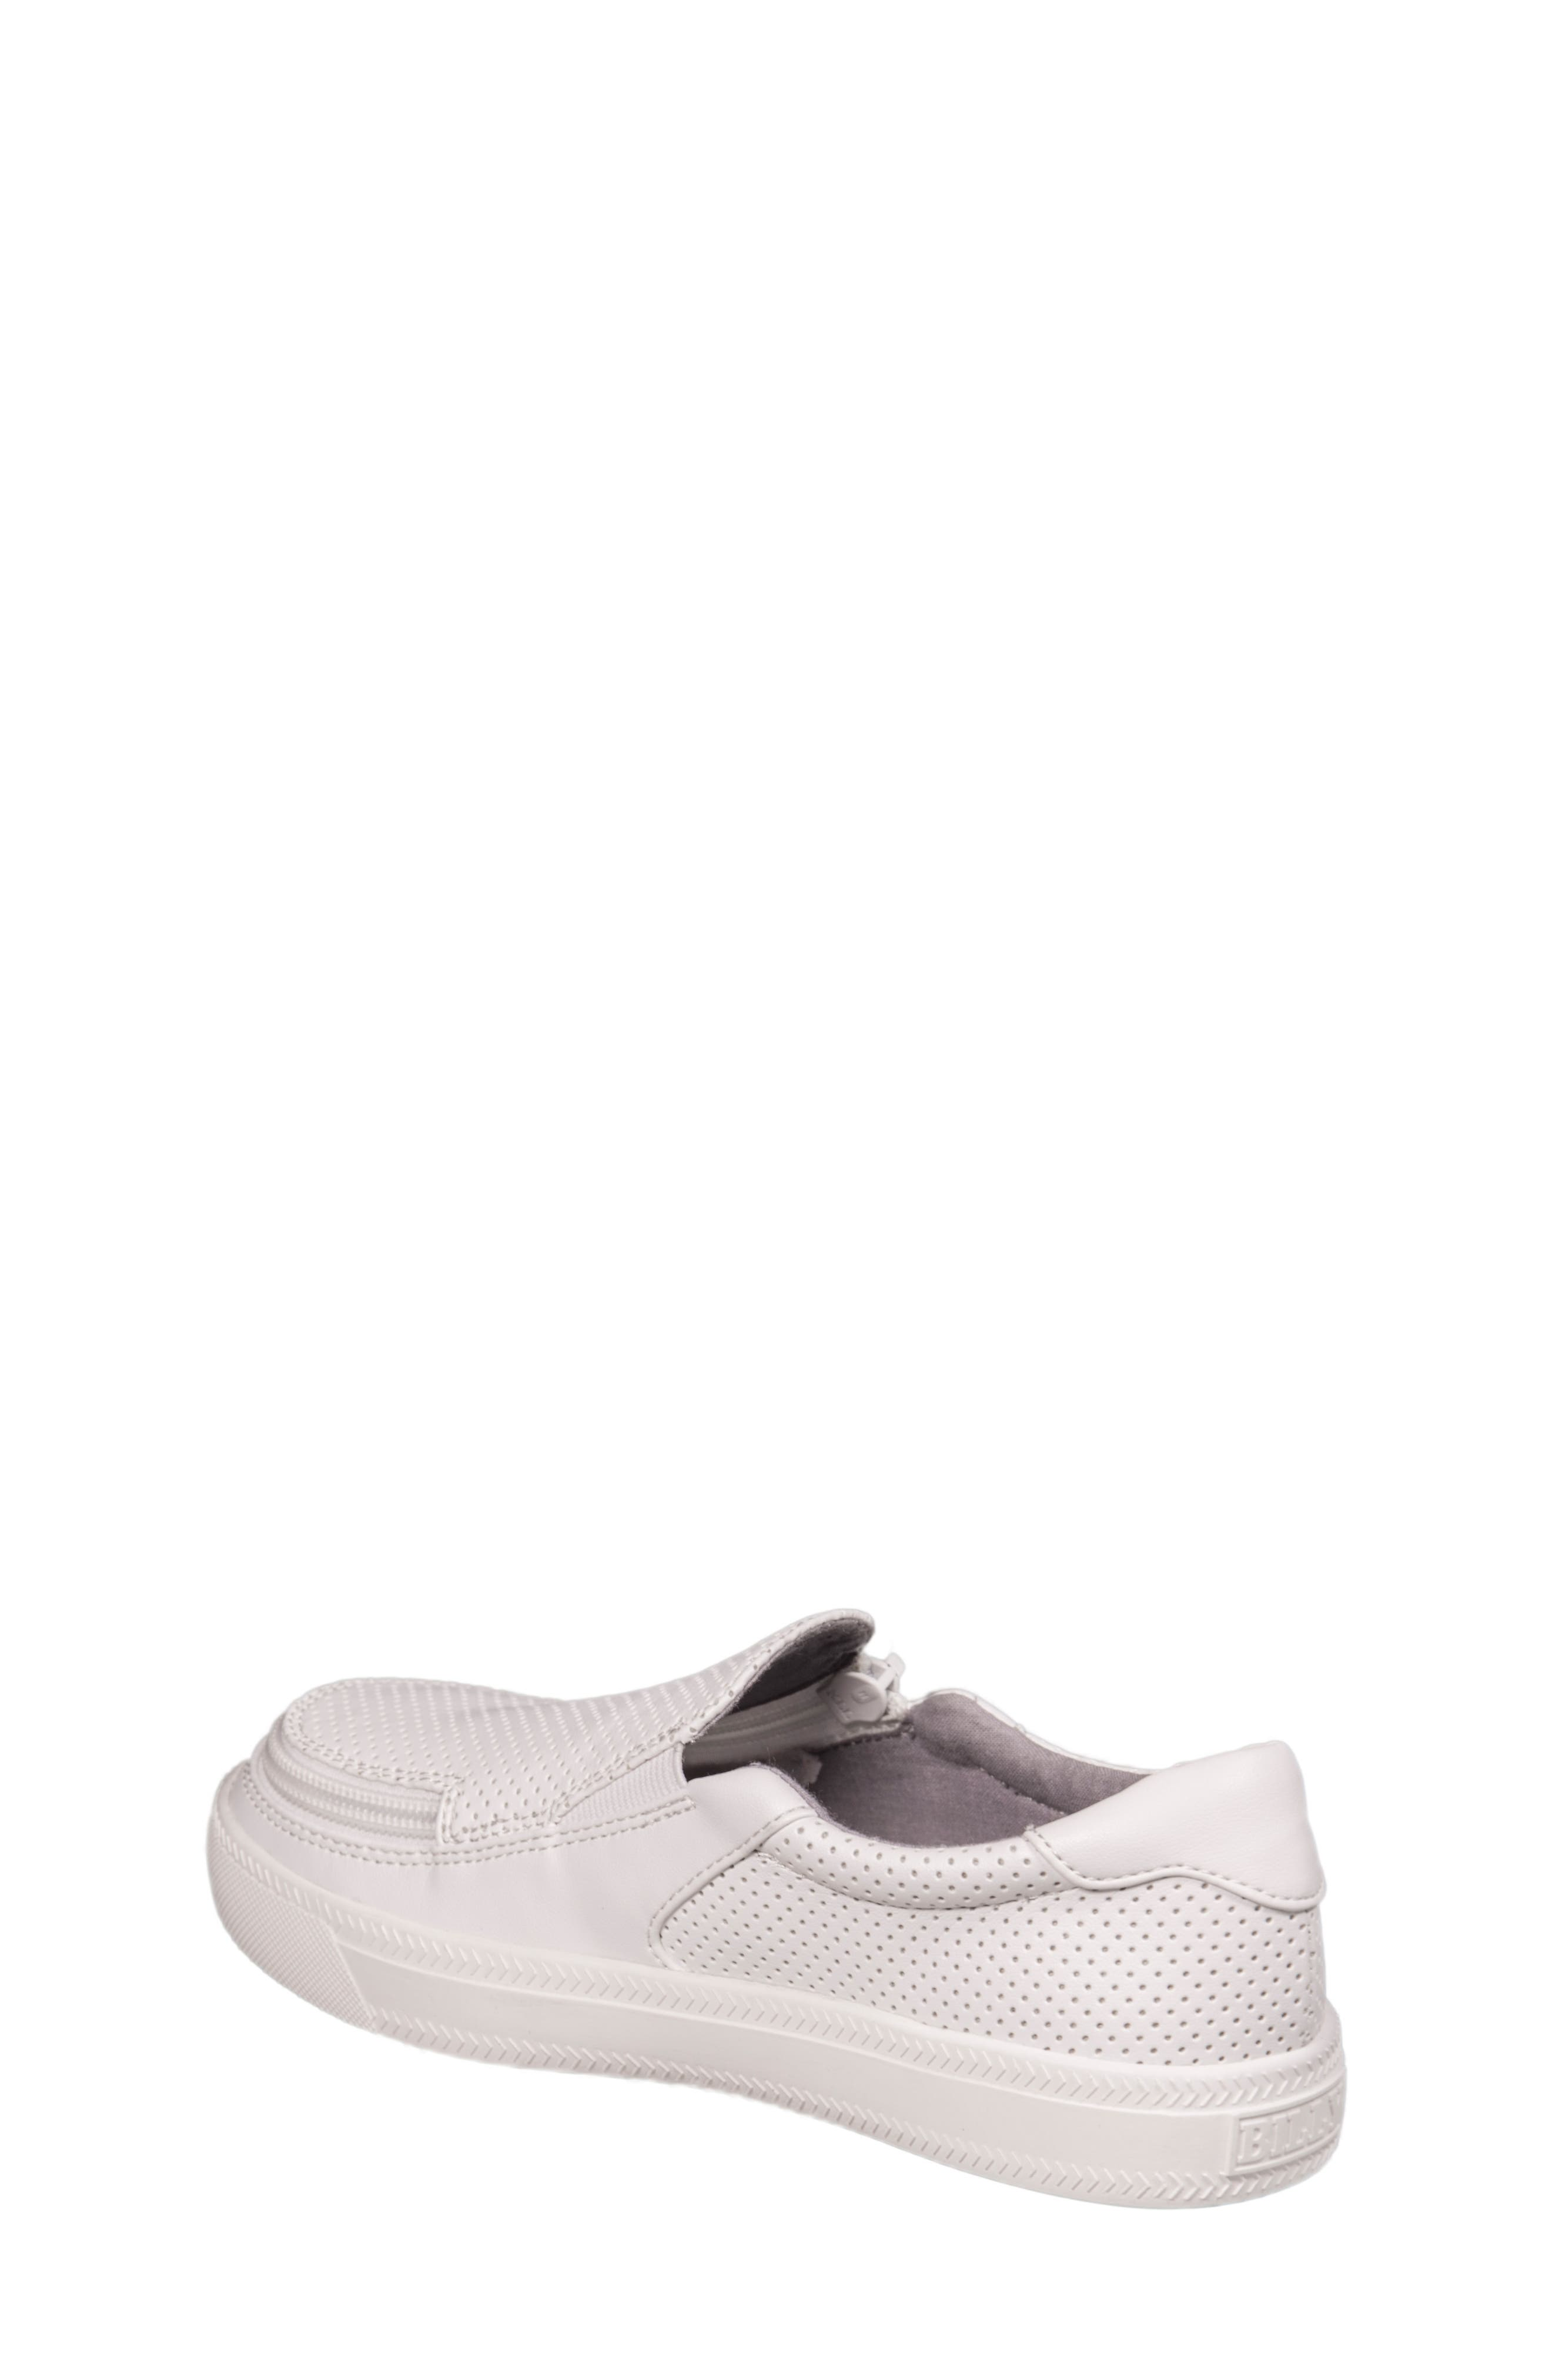 Zip Around Perforated Low Top Sneaker,                             Alternate thumbnail 2, color,                             White Perforated